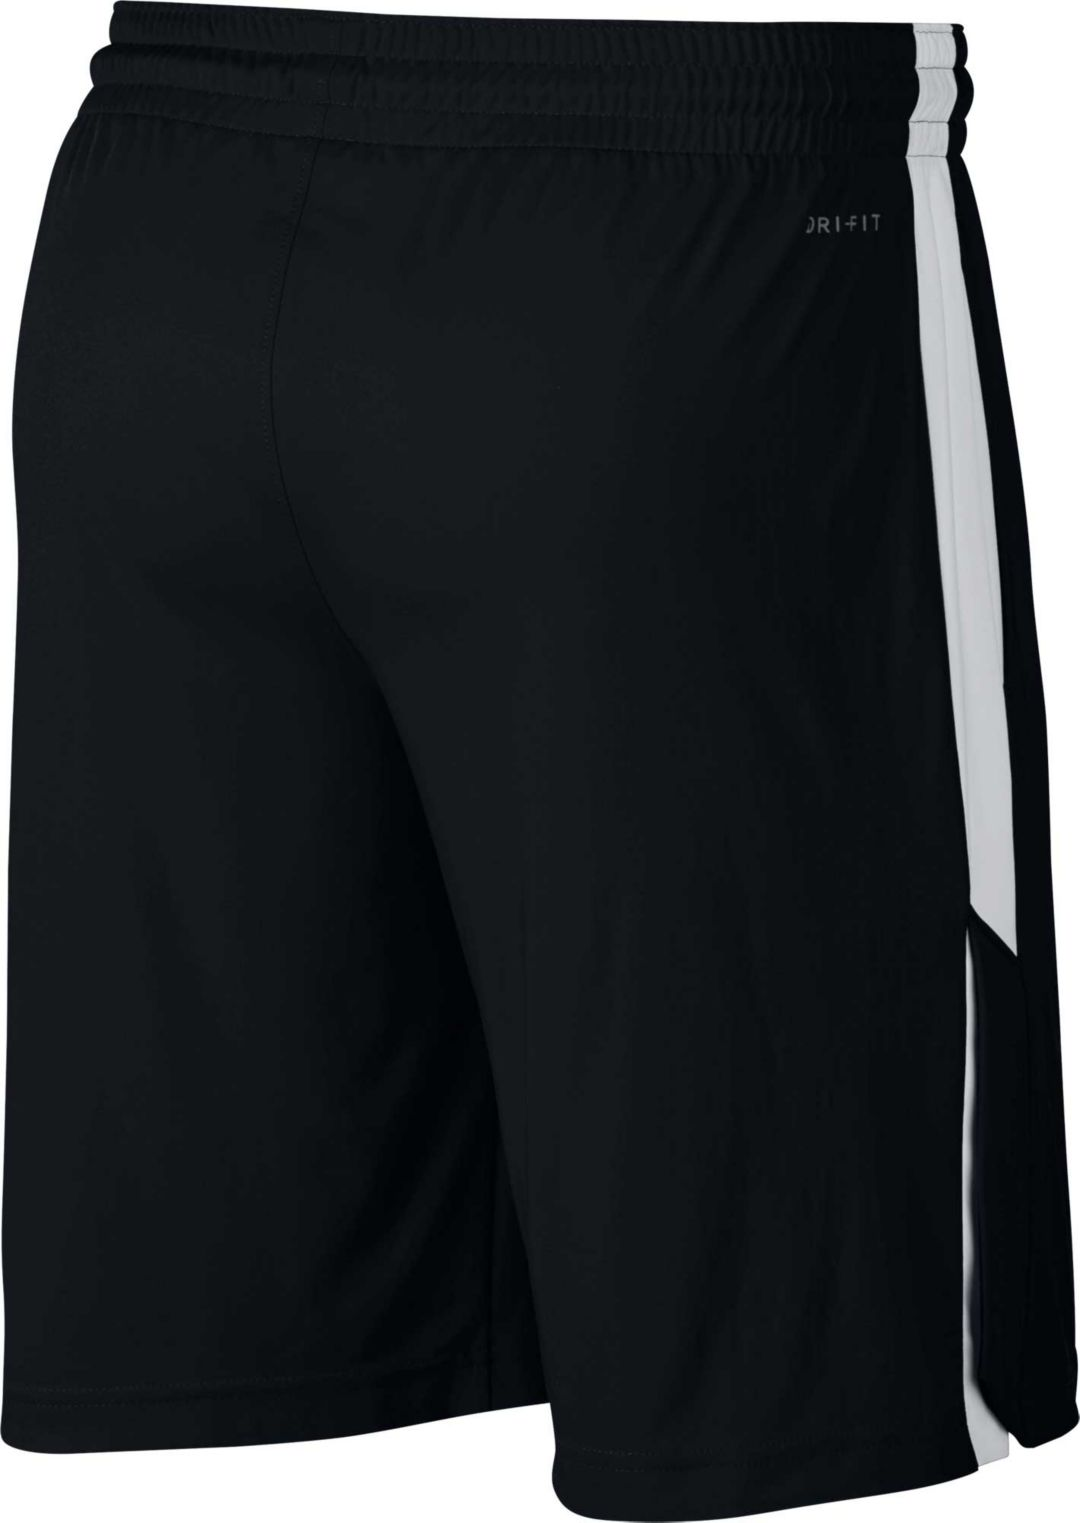 e45b11608e3 Jordan Men's Dri-FIT 23 Alpha Training Shorts | DICK'S Sporting Goods